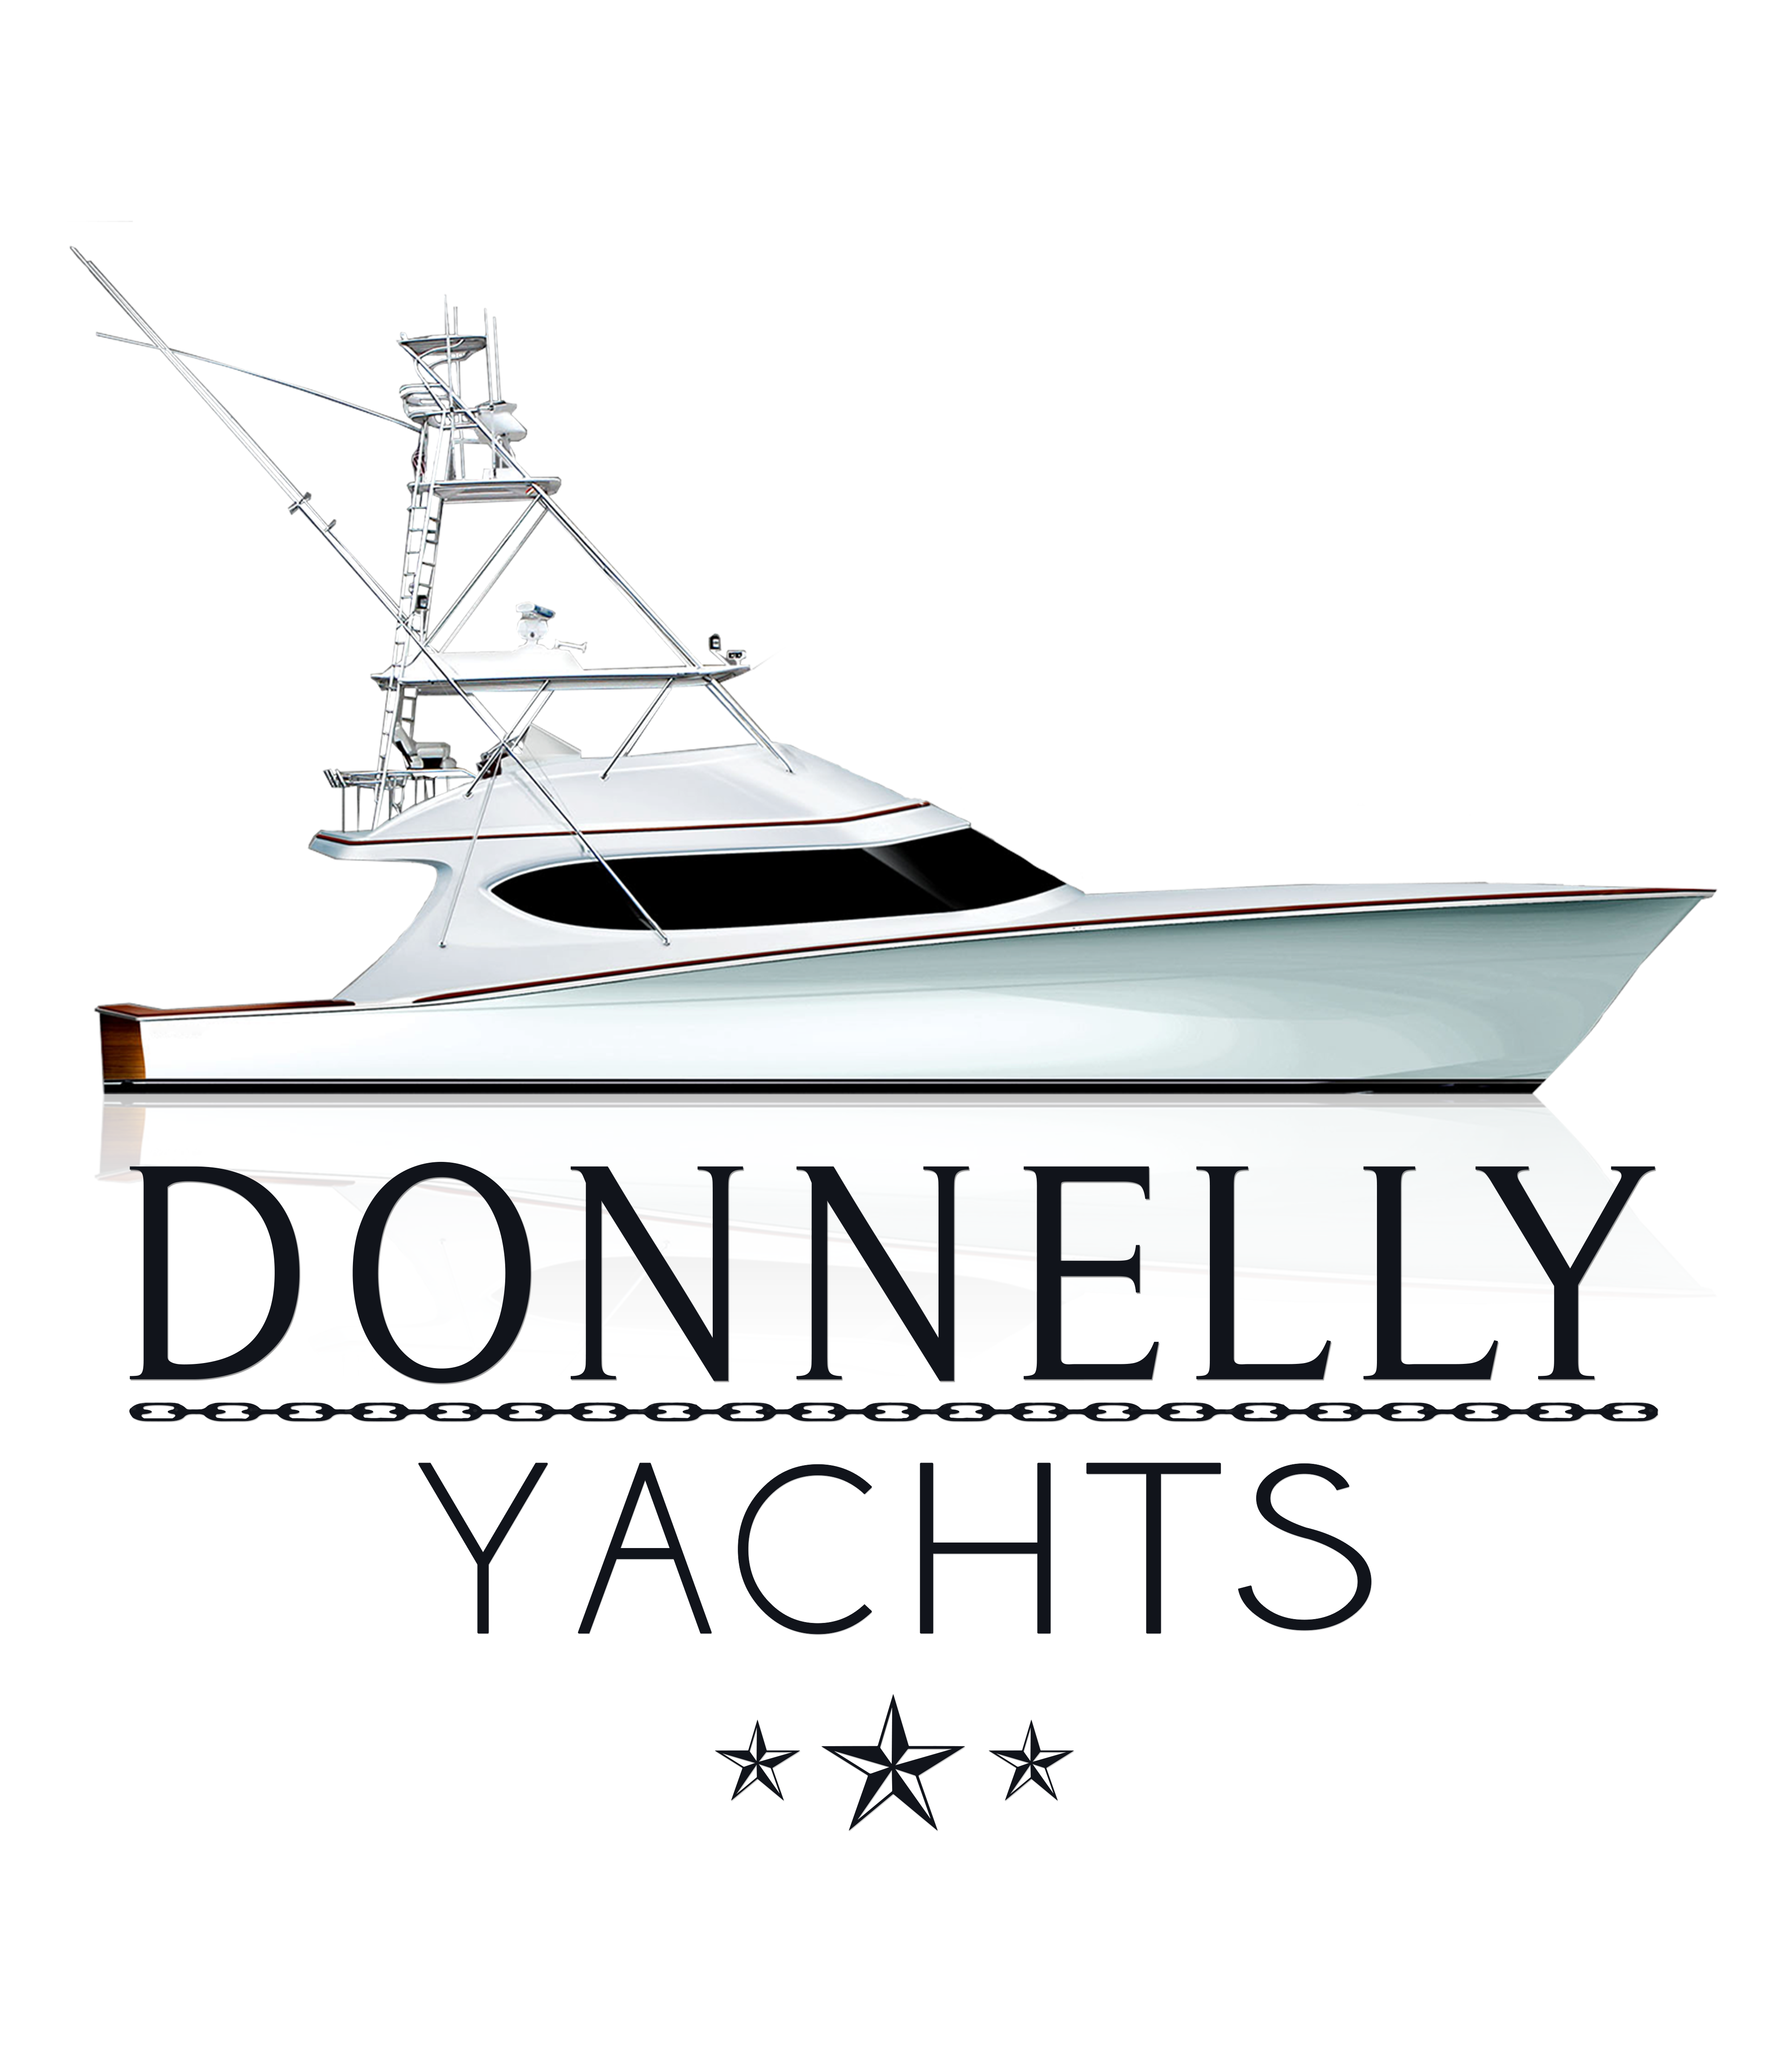 Donnelly Yachts - Donnelly Yachts logo